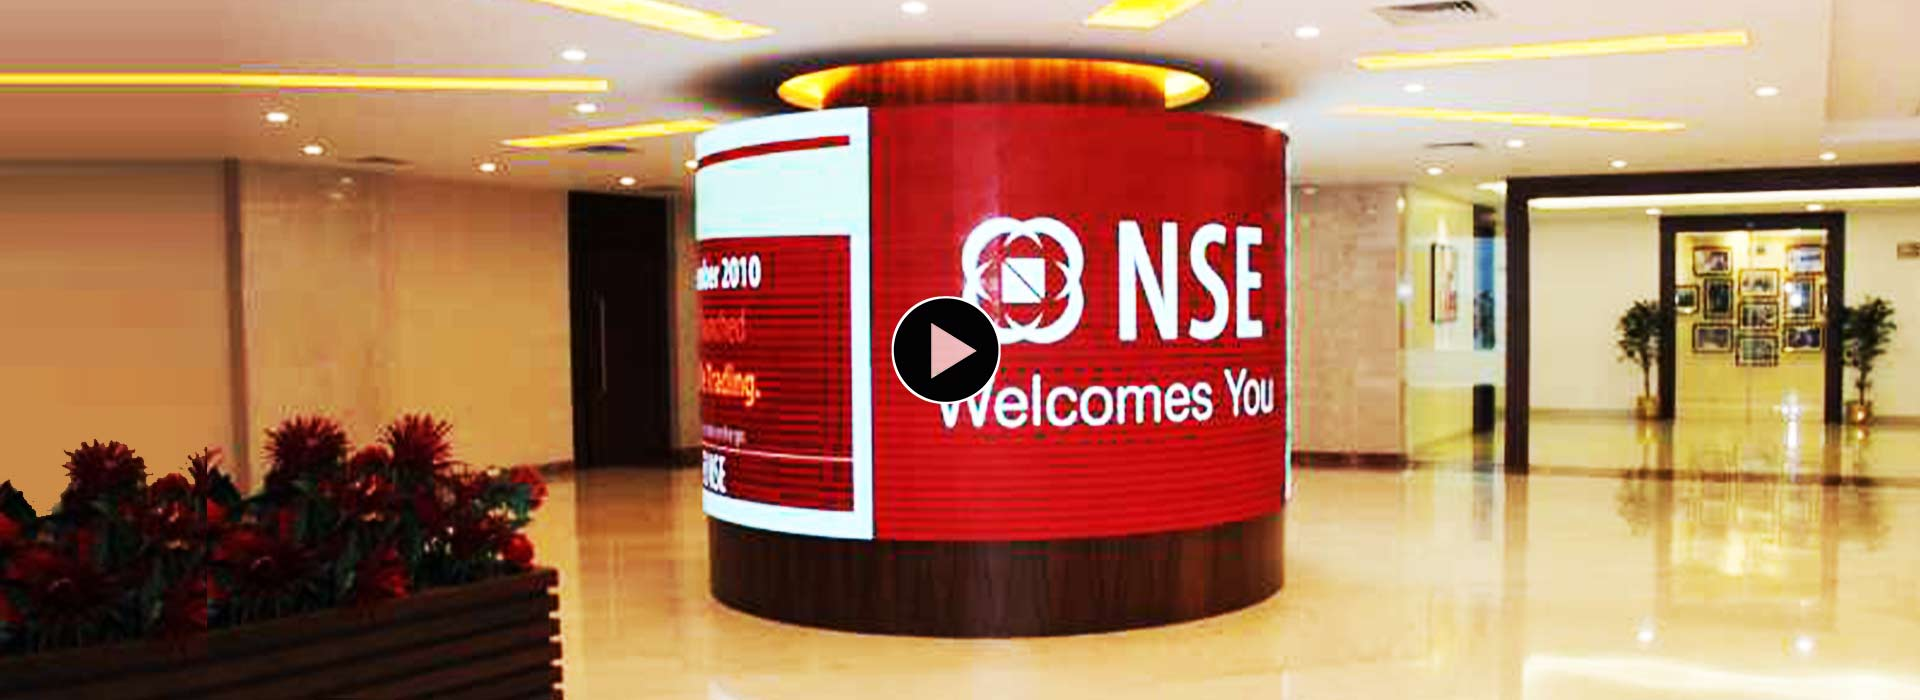 LED Displays for Banking and Finance Industry